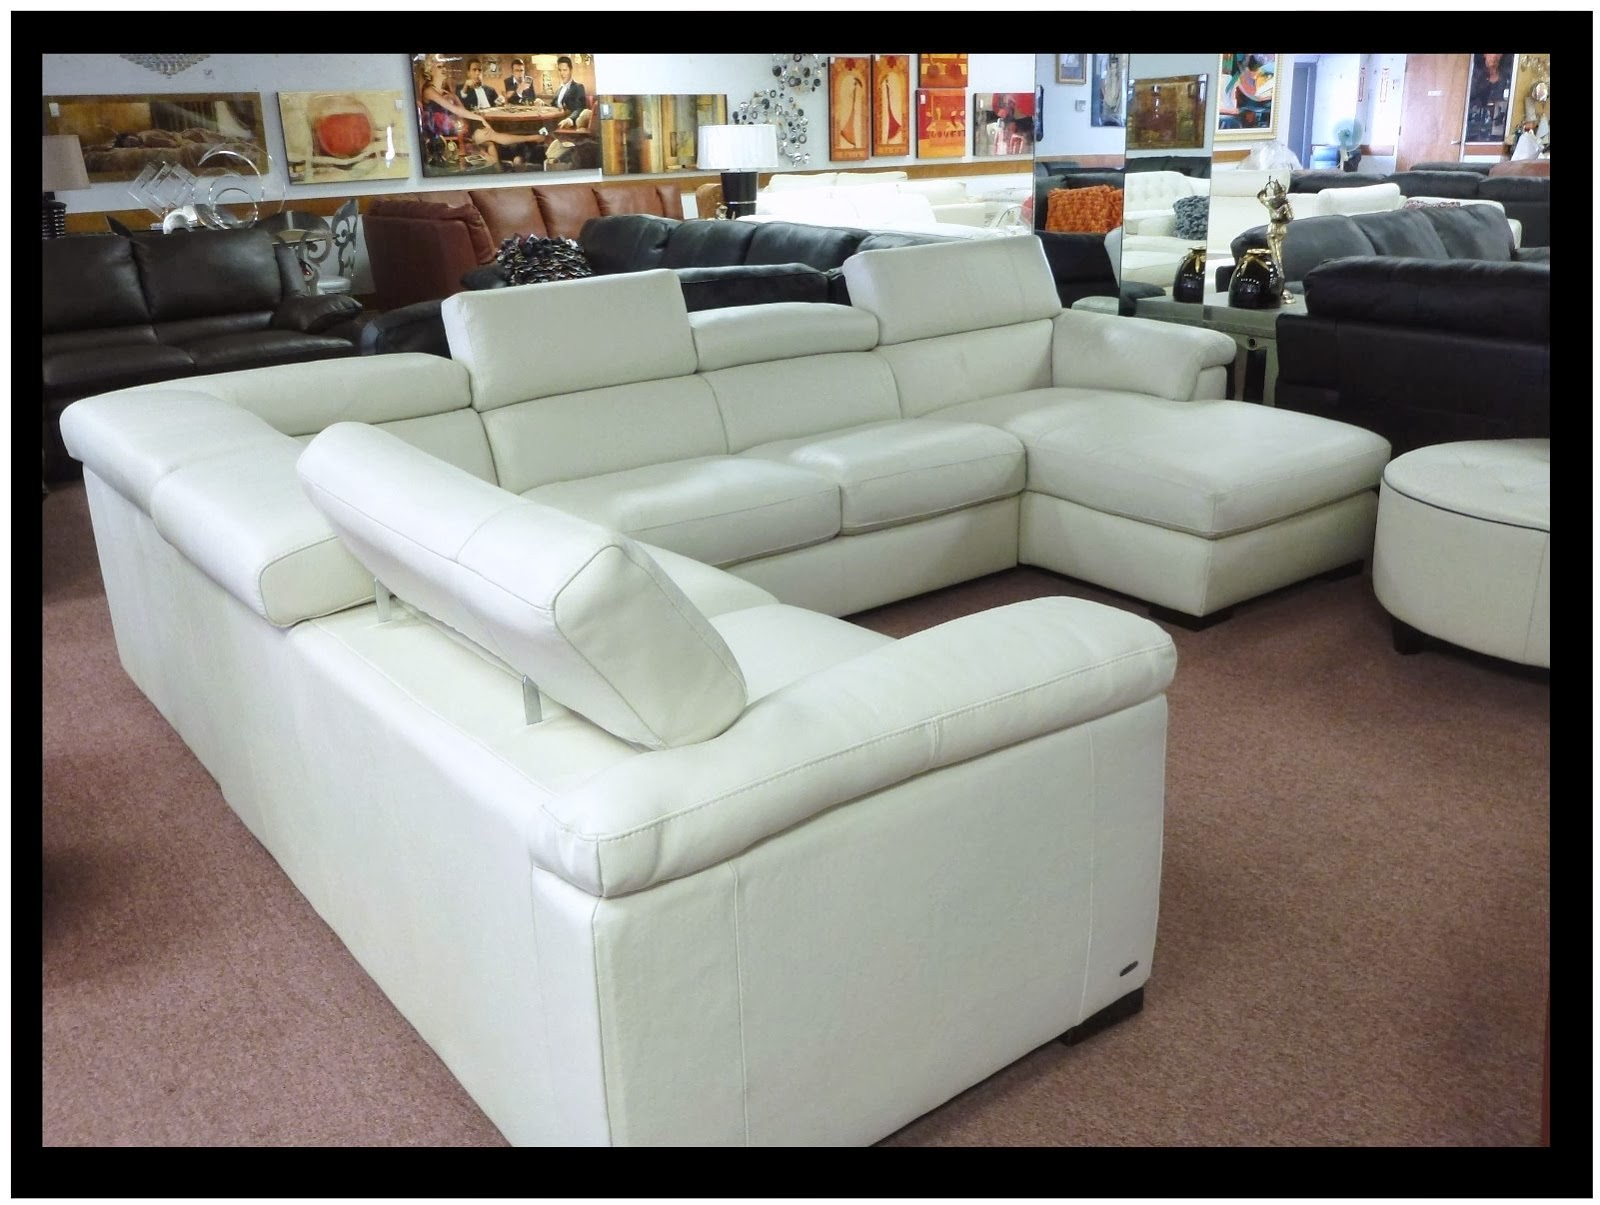 White Leather Sofa Sale Sofas Camas Cruces Barcelona Natuzzi And Sectionals By Interior Concepts